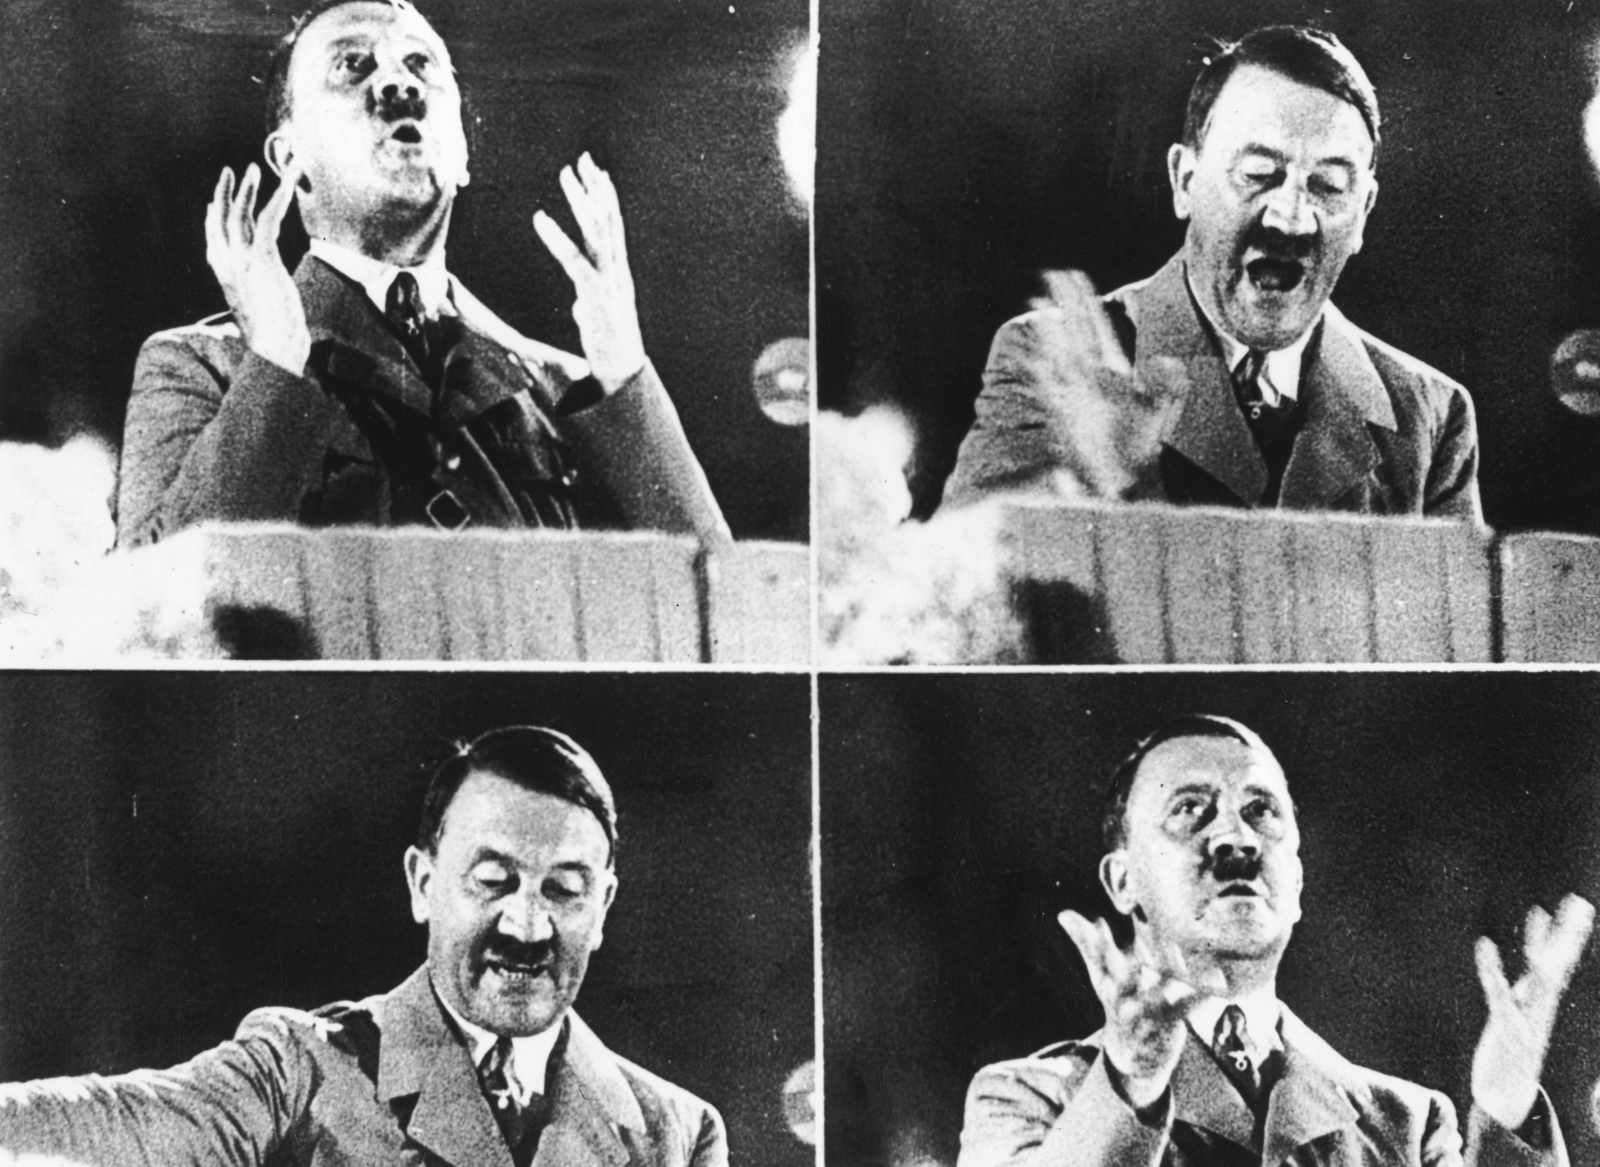 Adolf Hitler's manic mannerisms may be attributed to his crystal meth addiction